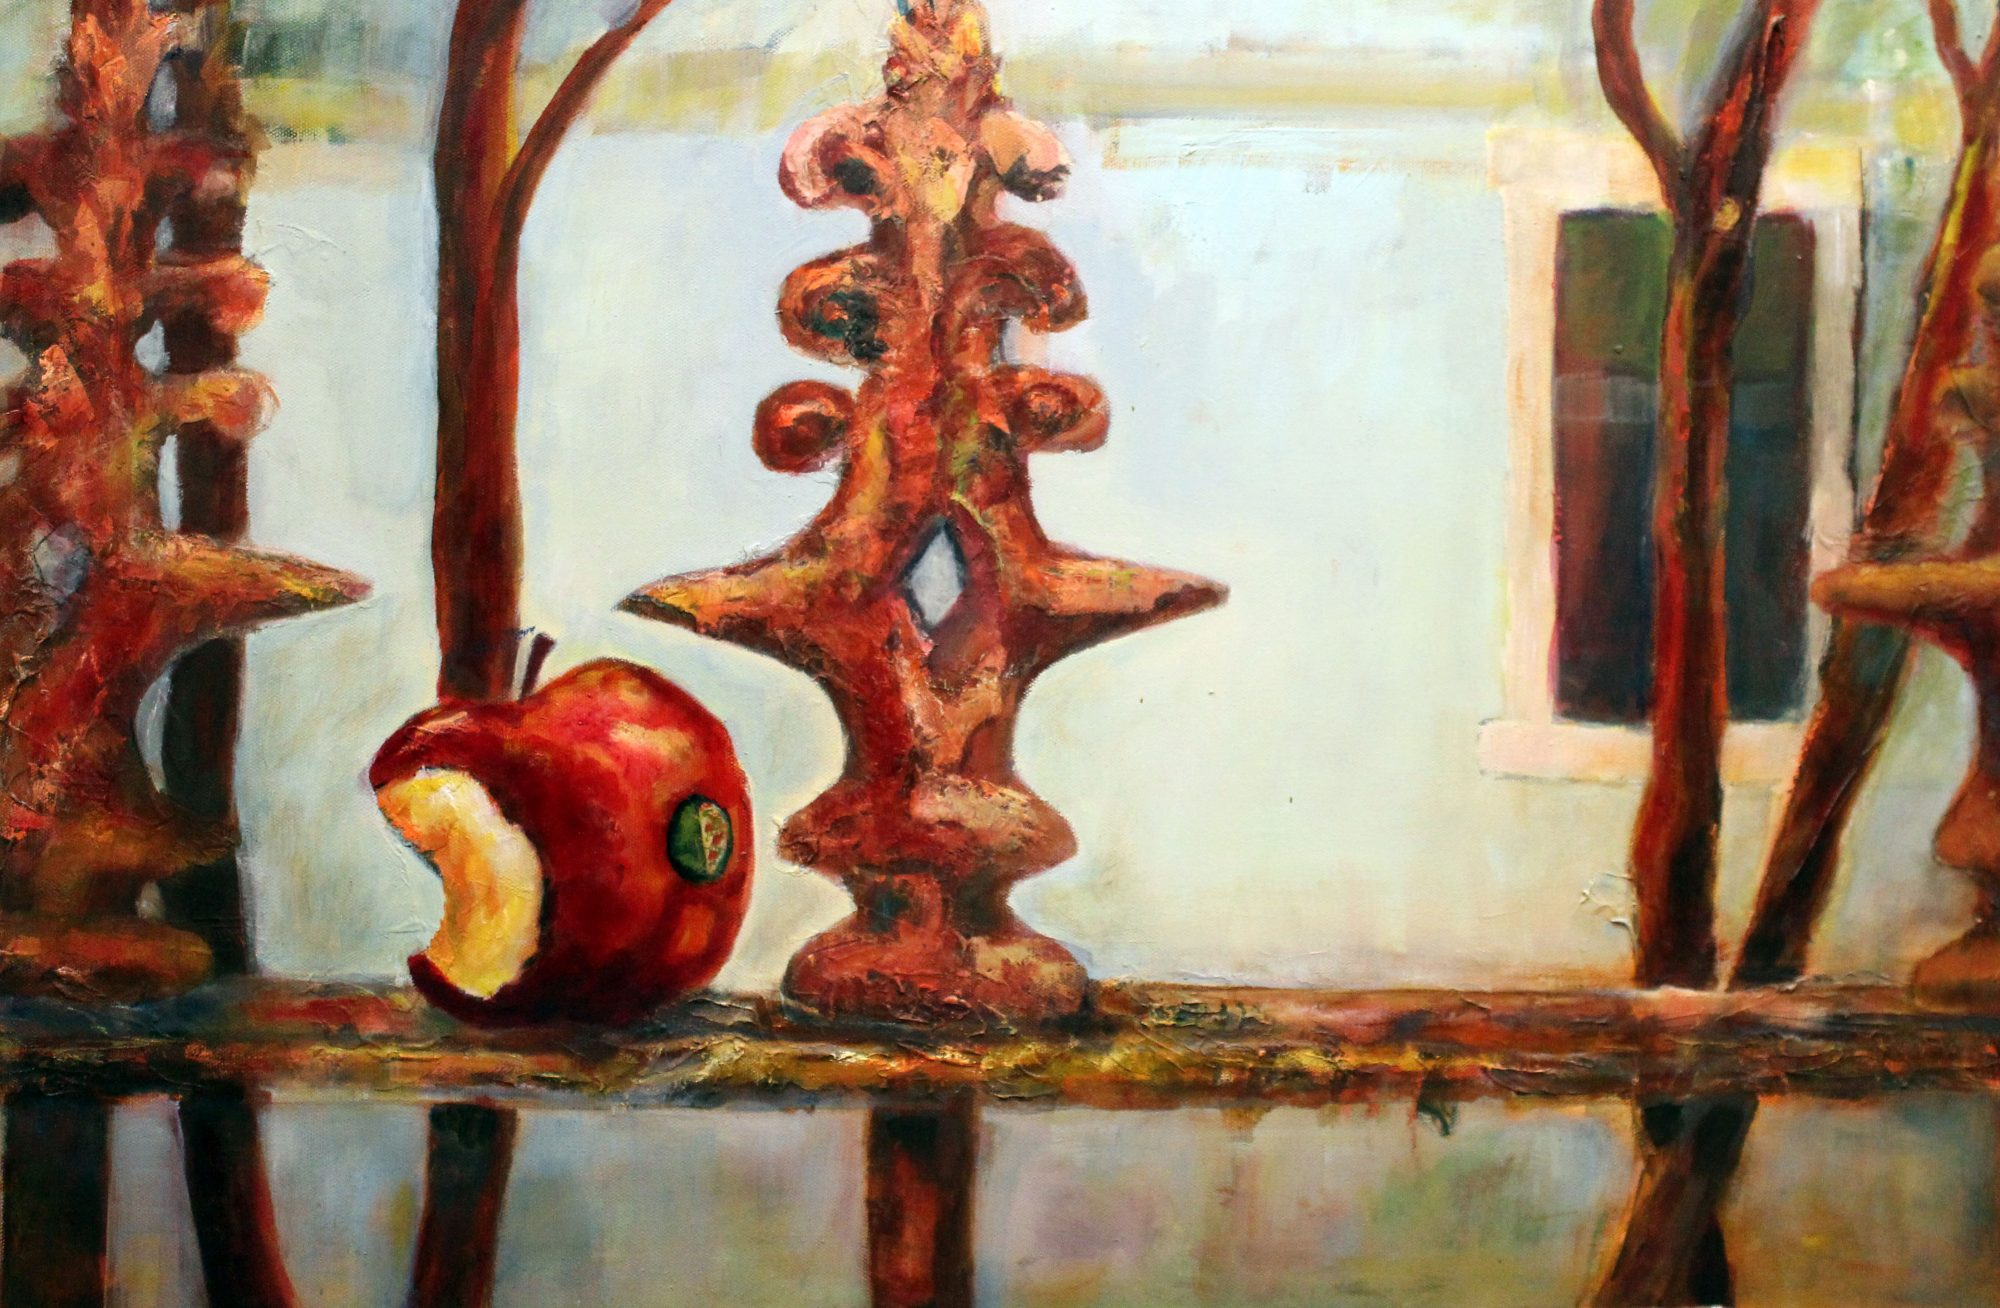 the-bus-arrived-no-time-to-finish-my-apple-76x50cm-oil-and-acrylic-on-canvas-350